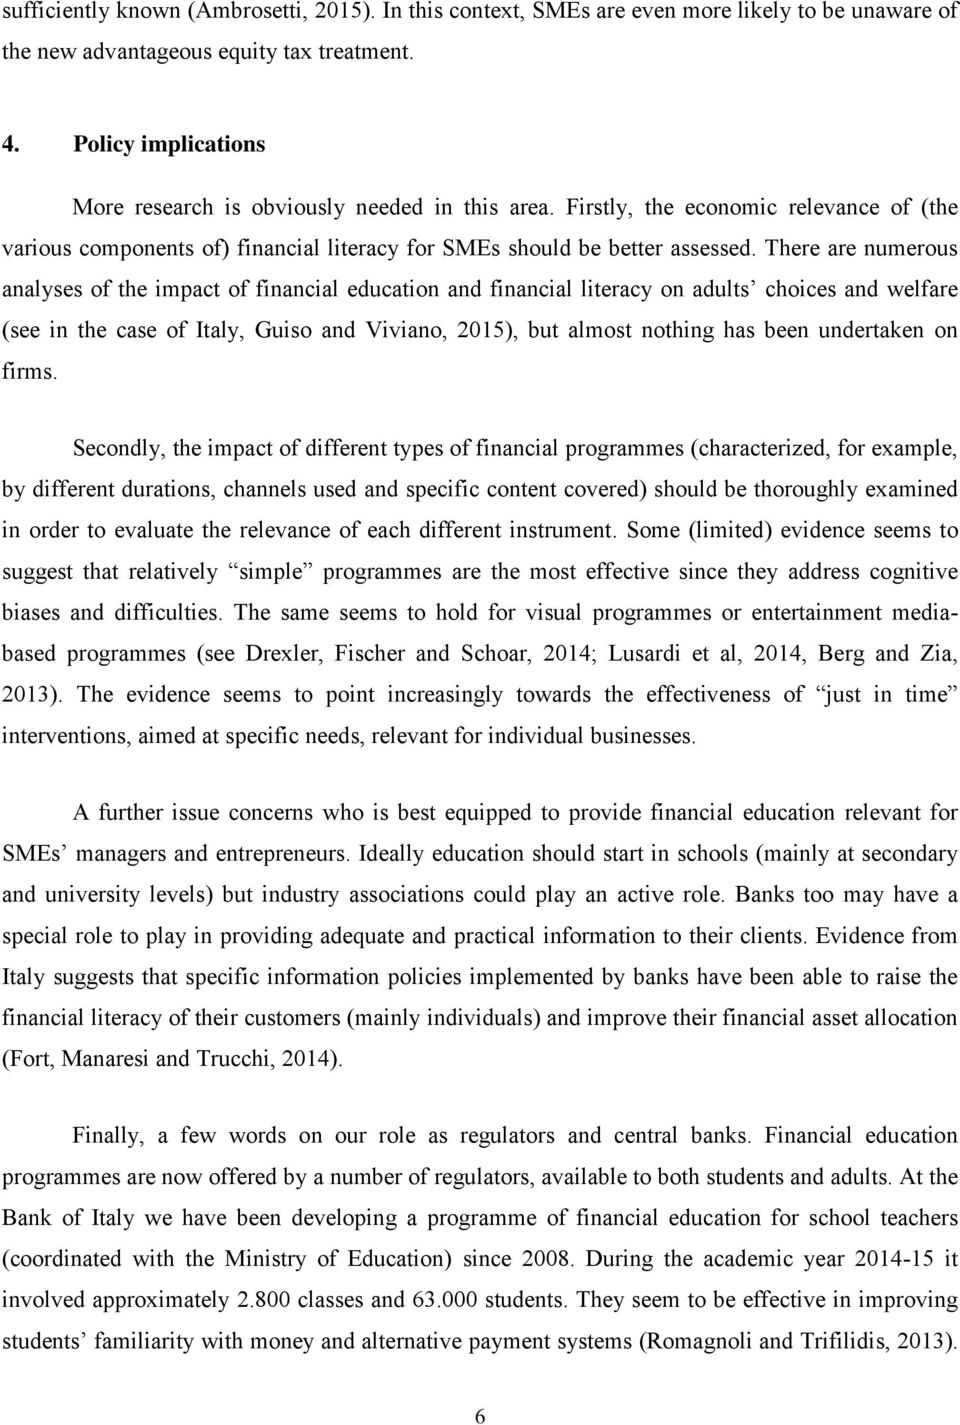 There are numerous analyses of the impact of financial education and financial literacy on adults choices and welfare (see in the case of Italy, Guiso and Viviano, 2015), but almost nothing has been